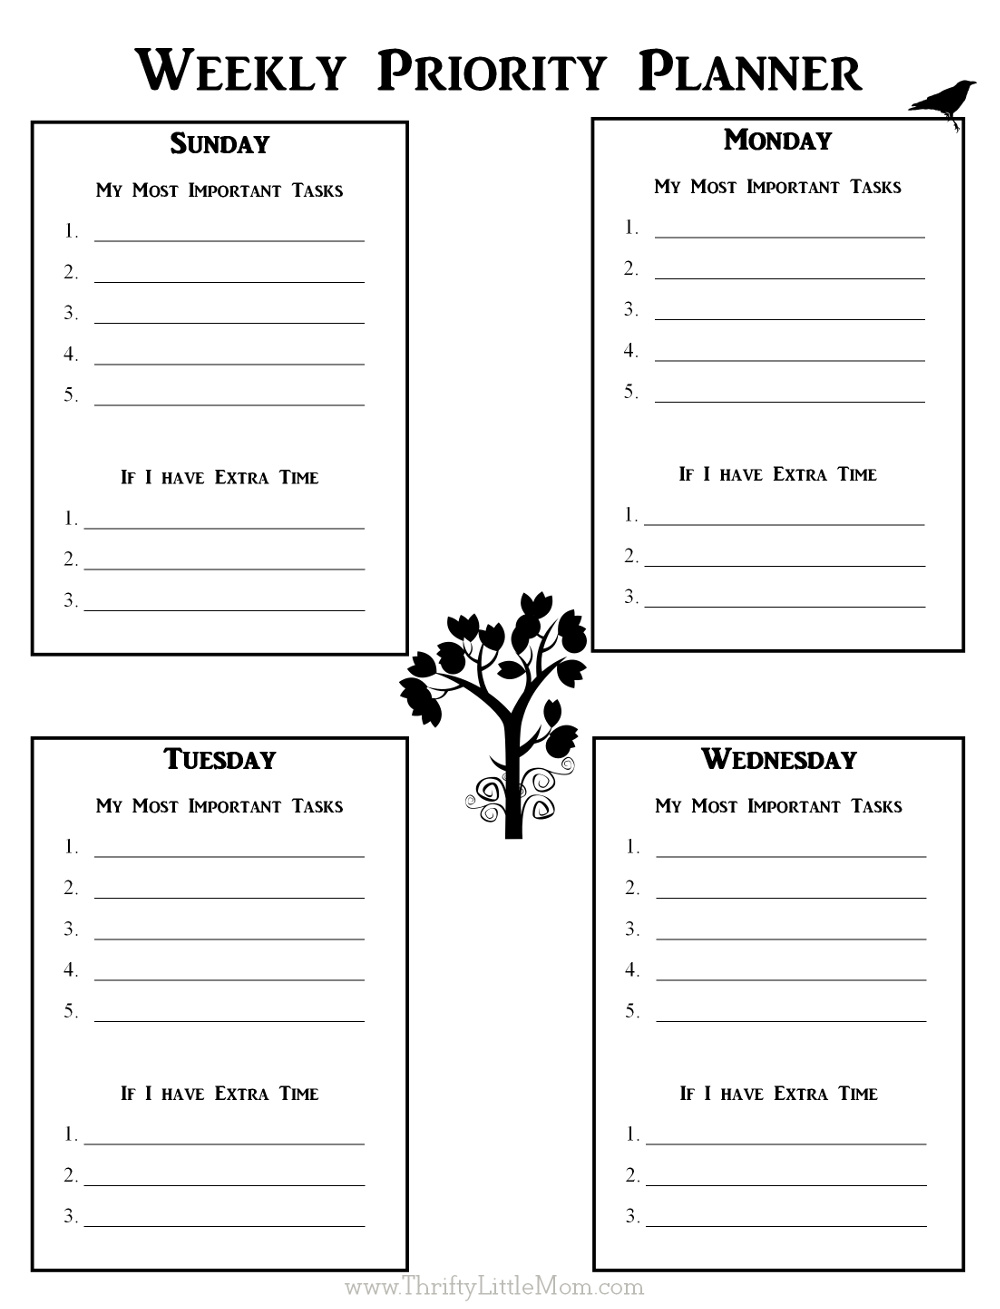 Weekly Priorty Planner Printable